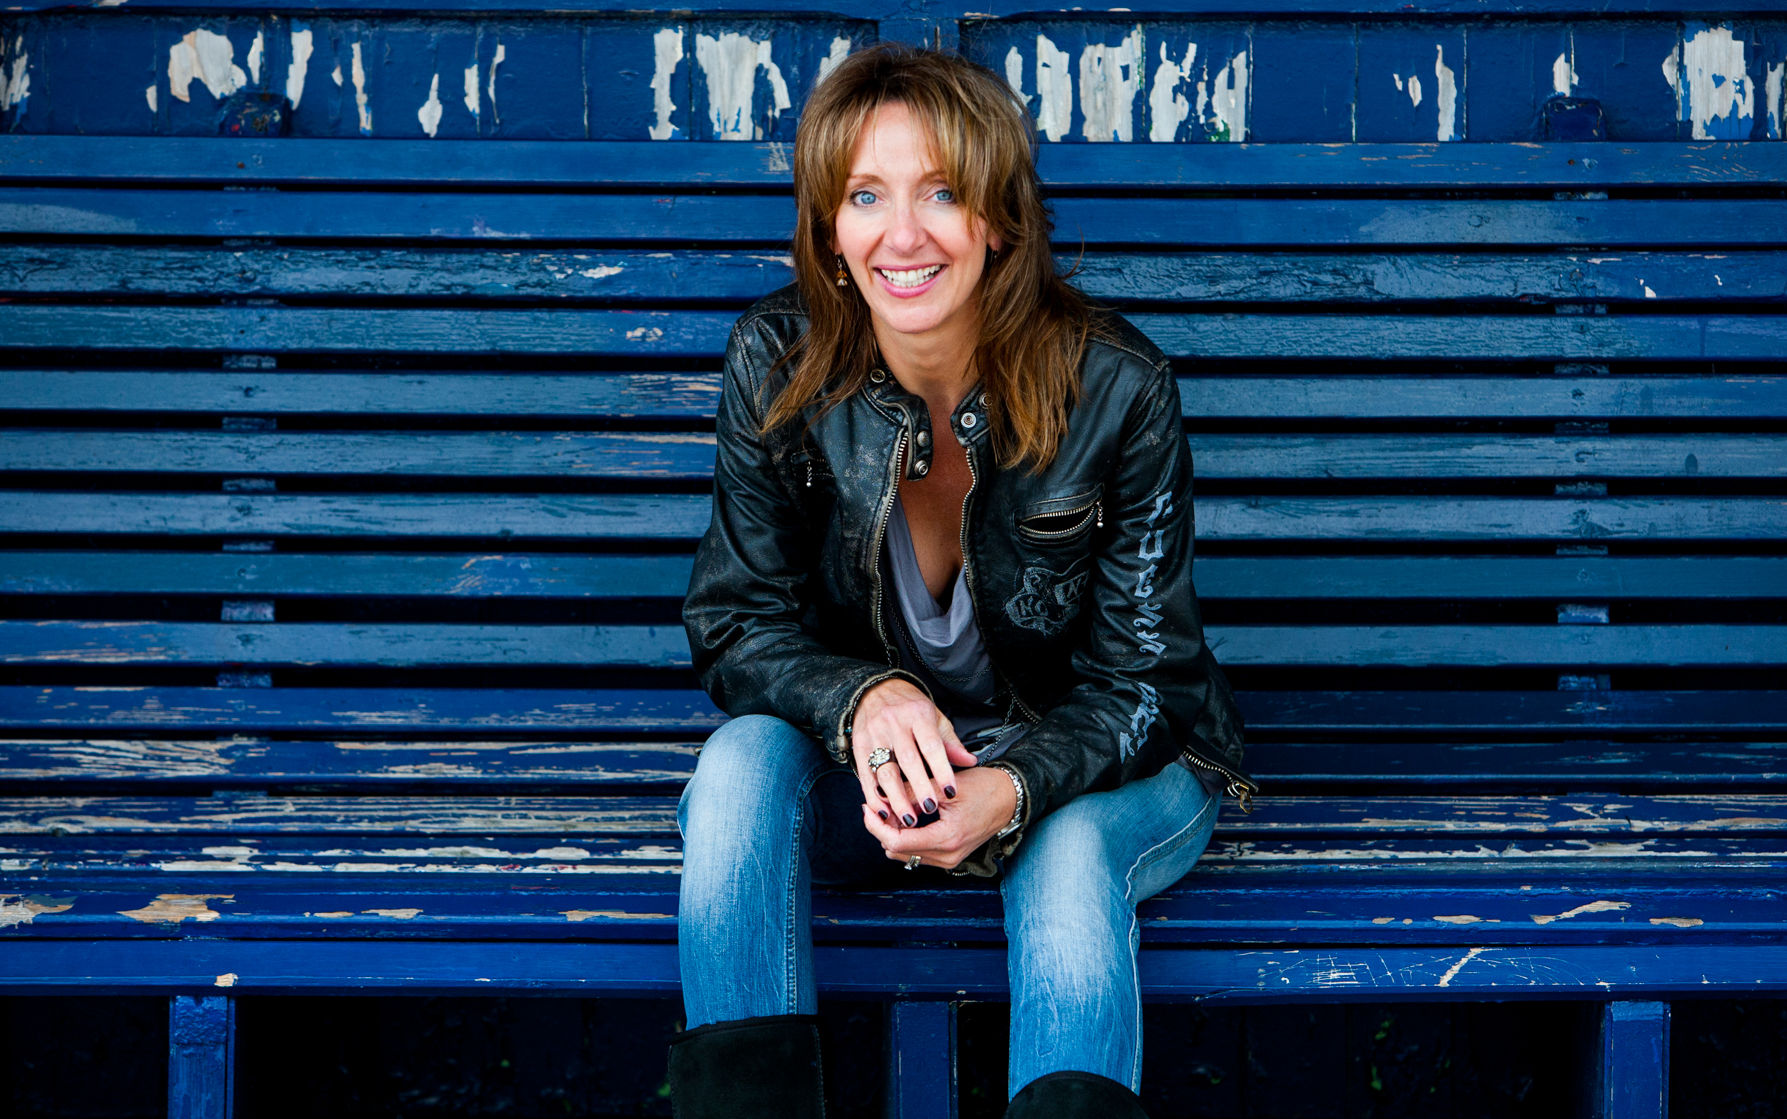 Lady on a blue bench and blue background wearing a black leather jacket smiling to camera